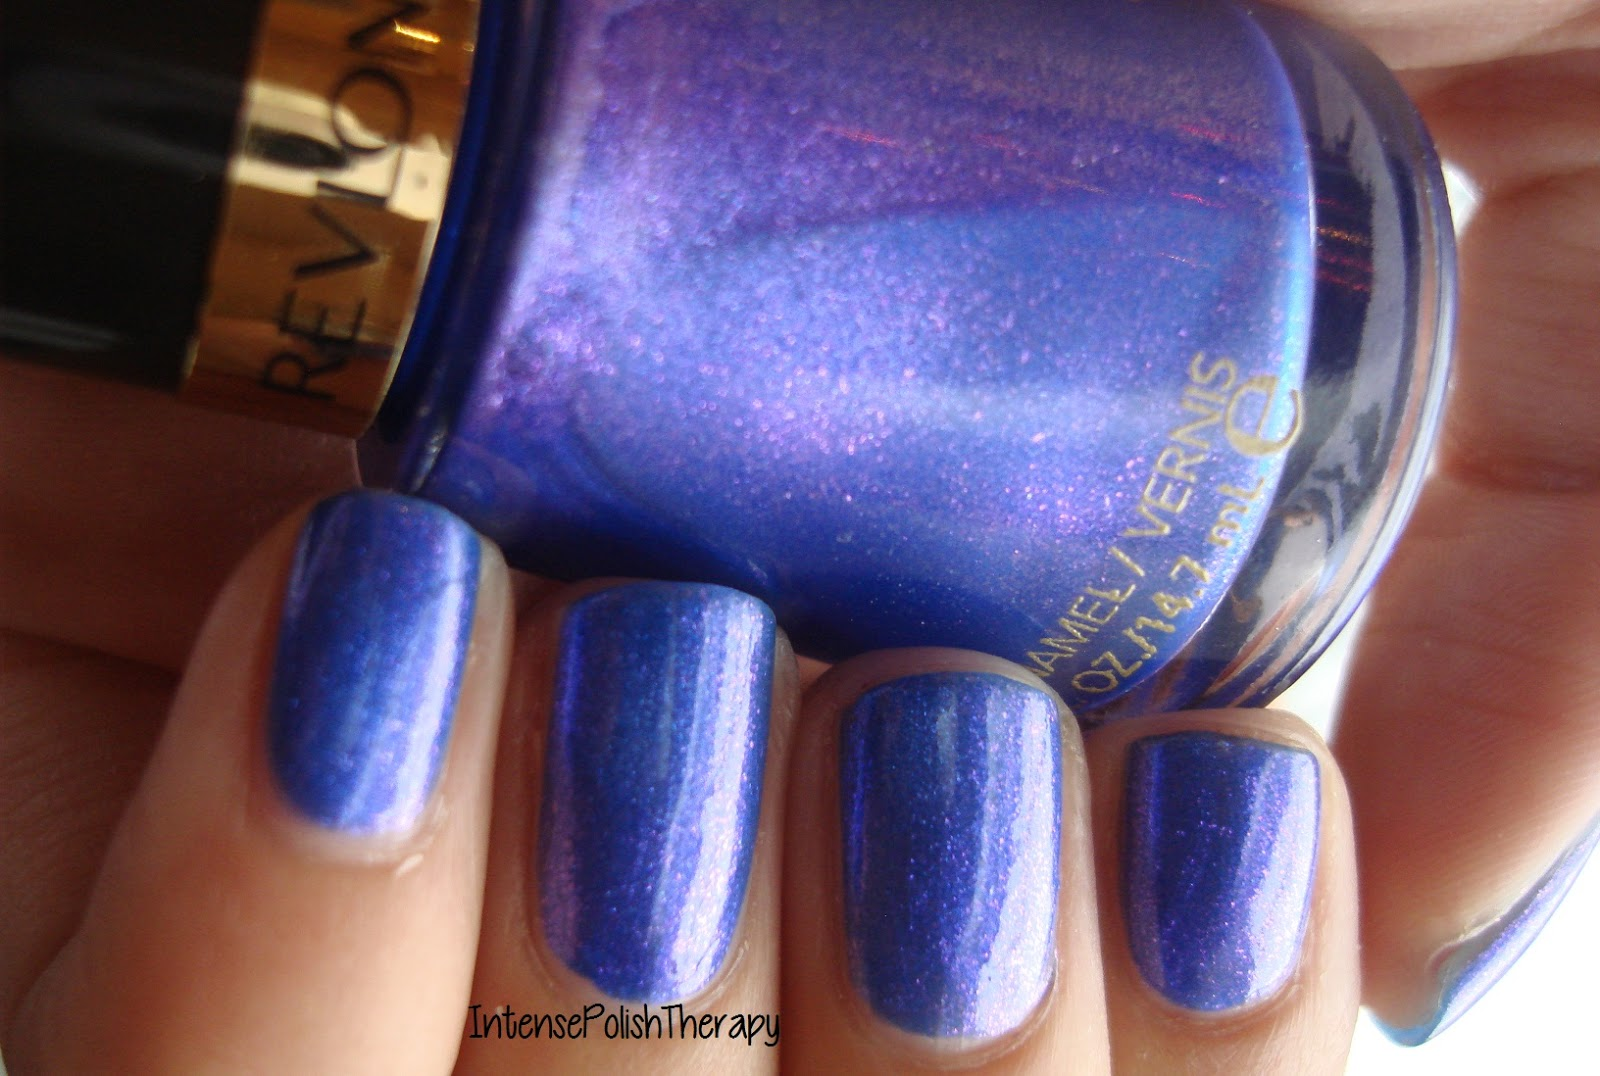 Intense Polish Therapy: Revlon Sultry & Cosmic Flakies